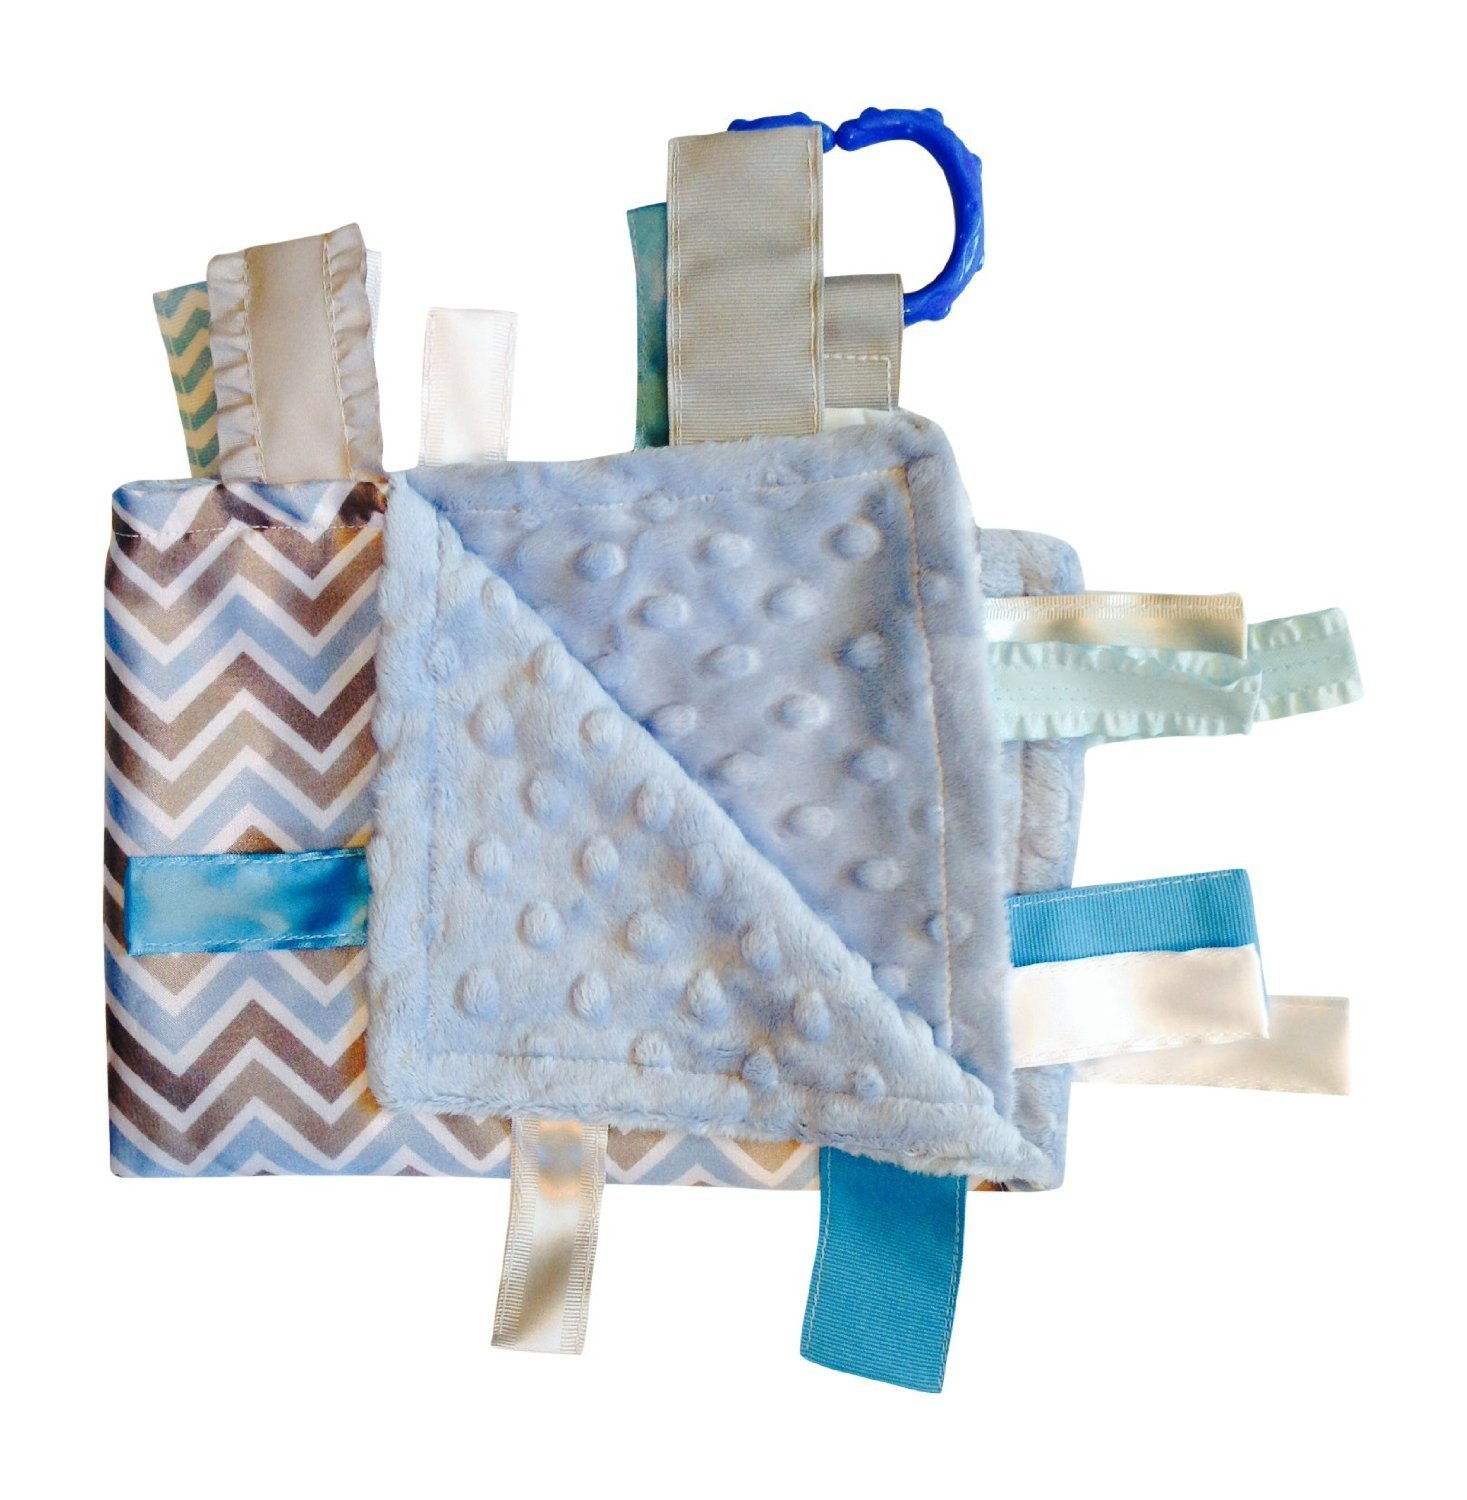 """Sensory Baby Boy Tag Blanket, Blue Gray Chevron, 14"""" X 18"""". For Entertainment, Security, Comfort. Also Used for Special Needs, Autism, Therapy. Ribbons Sewn Shut Into Tabs for Added Security. Made in Usa By Baby Jack Blankets"""